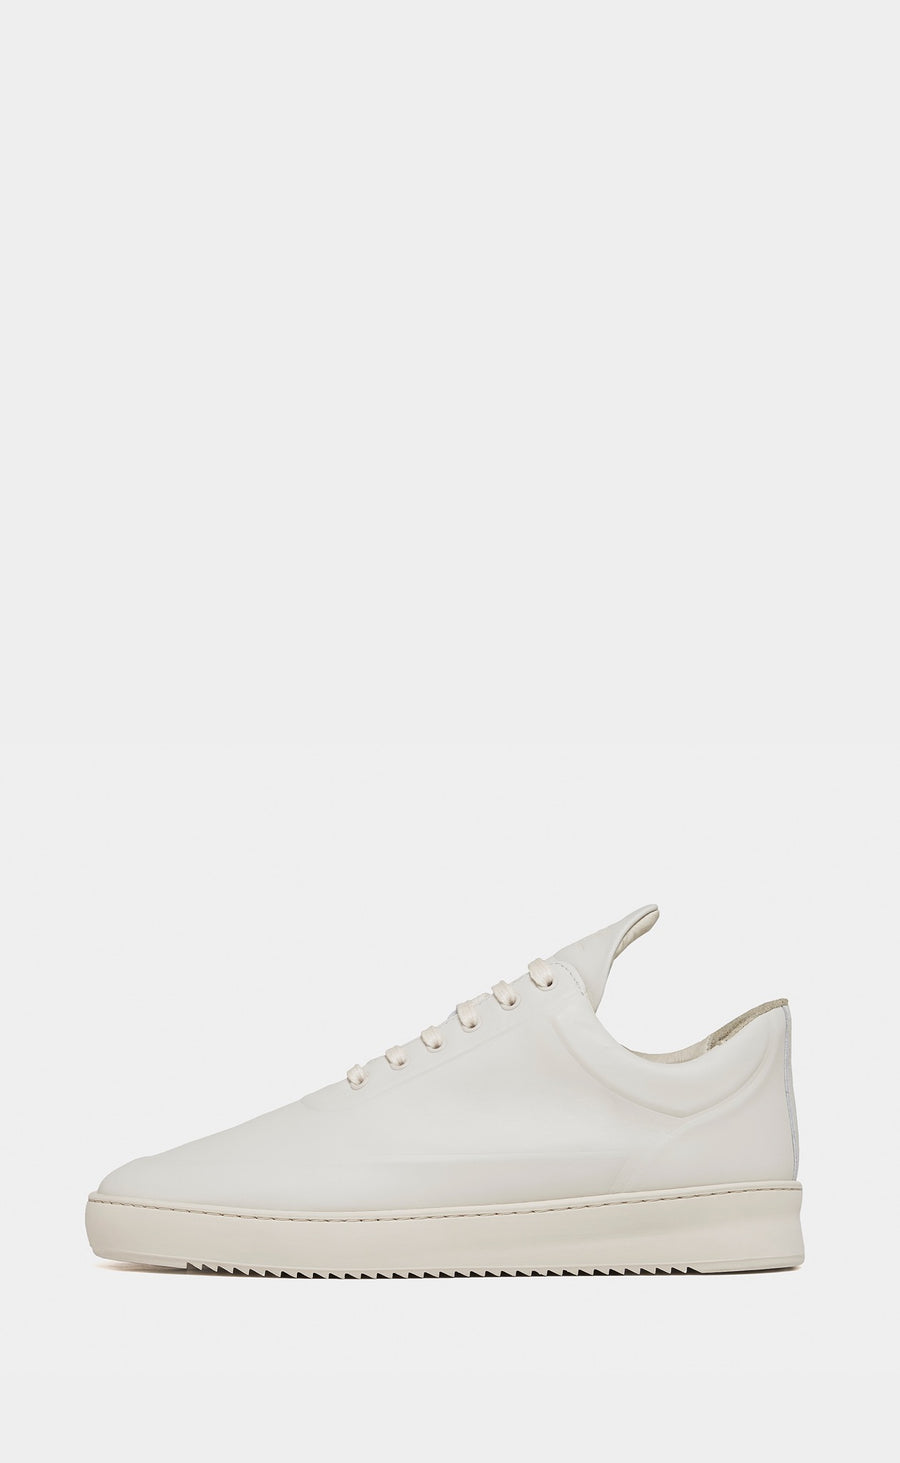 Low Top Ripple Embossed Off White